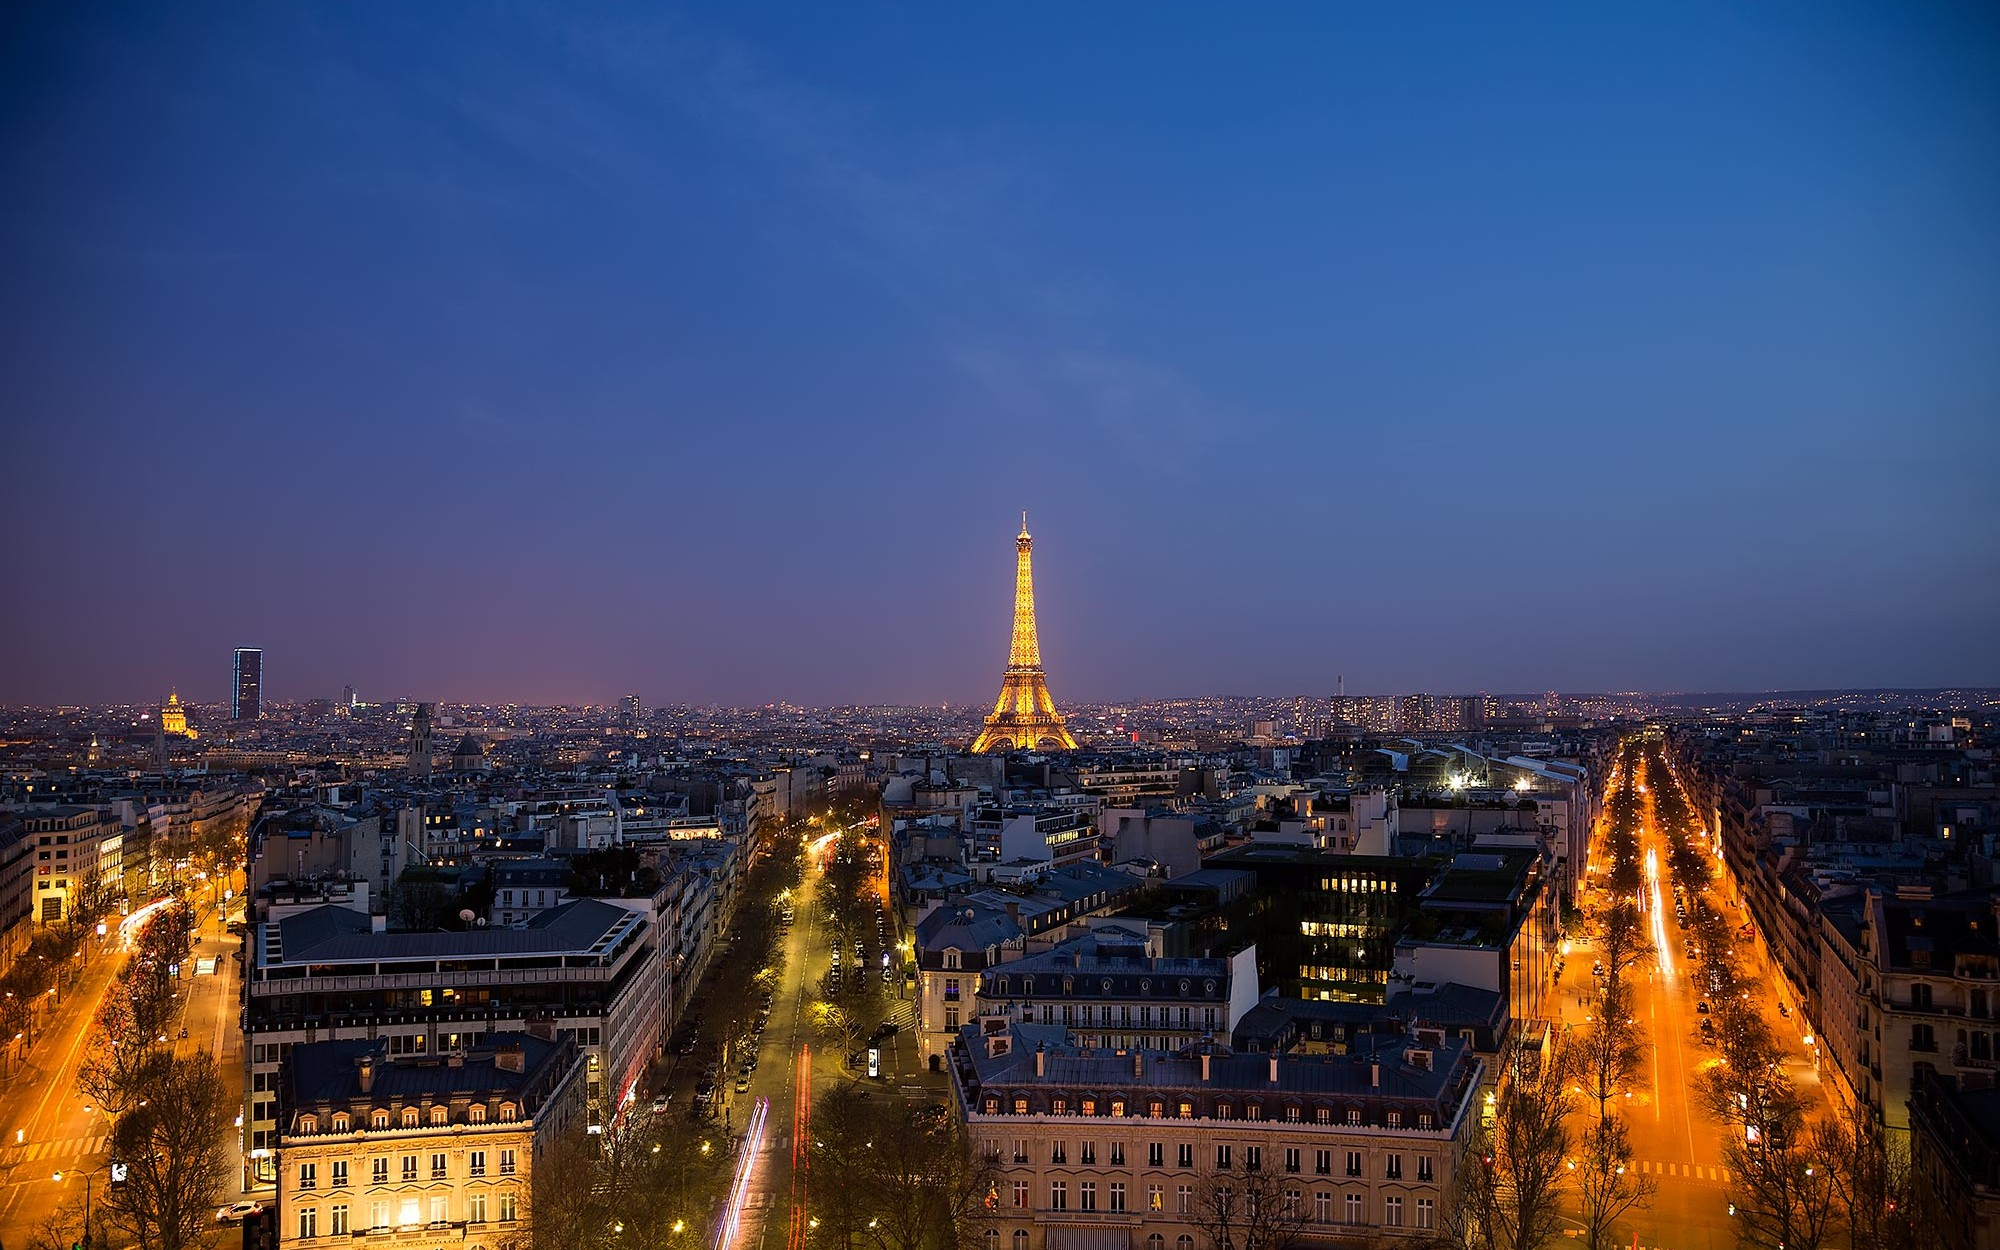 paris-from-above-arc-de-triomphe-eiffel-tower-france-2